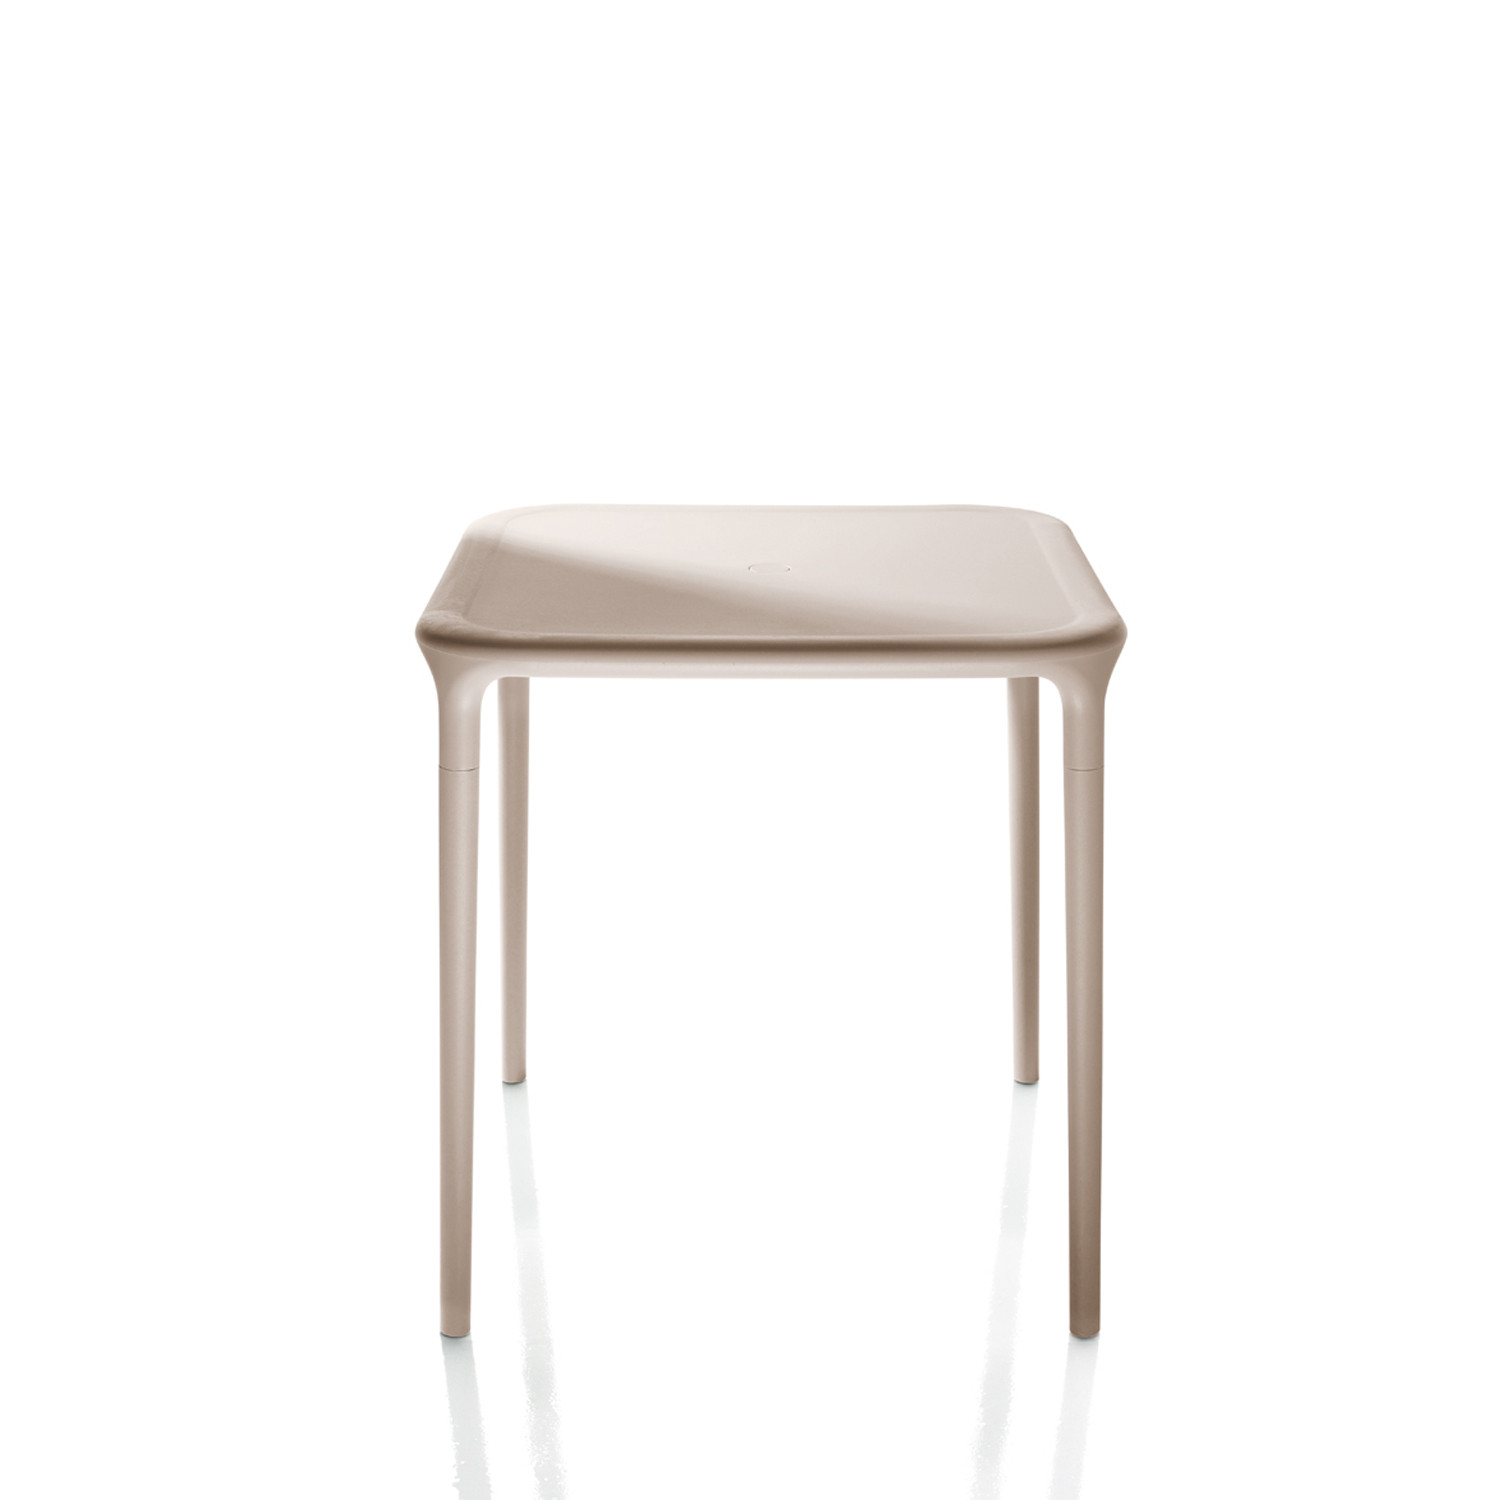 Air Table with square tabletop